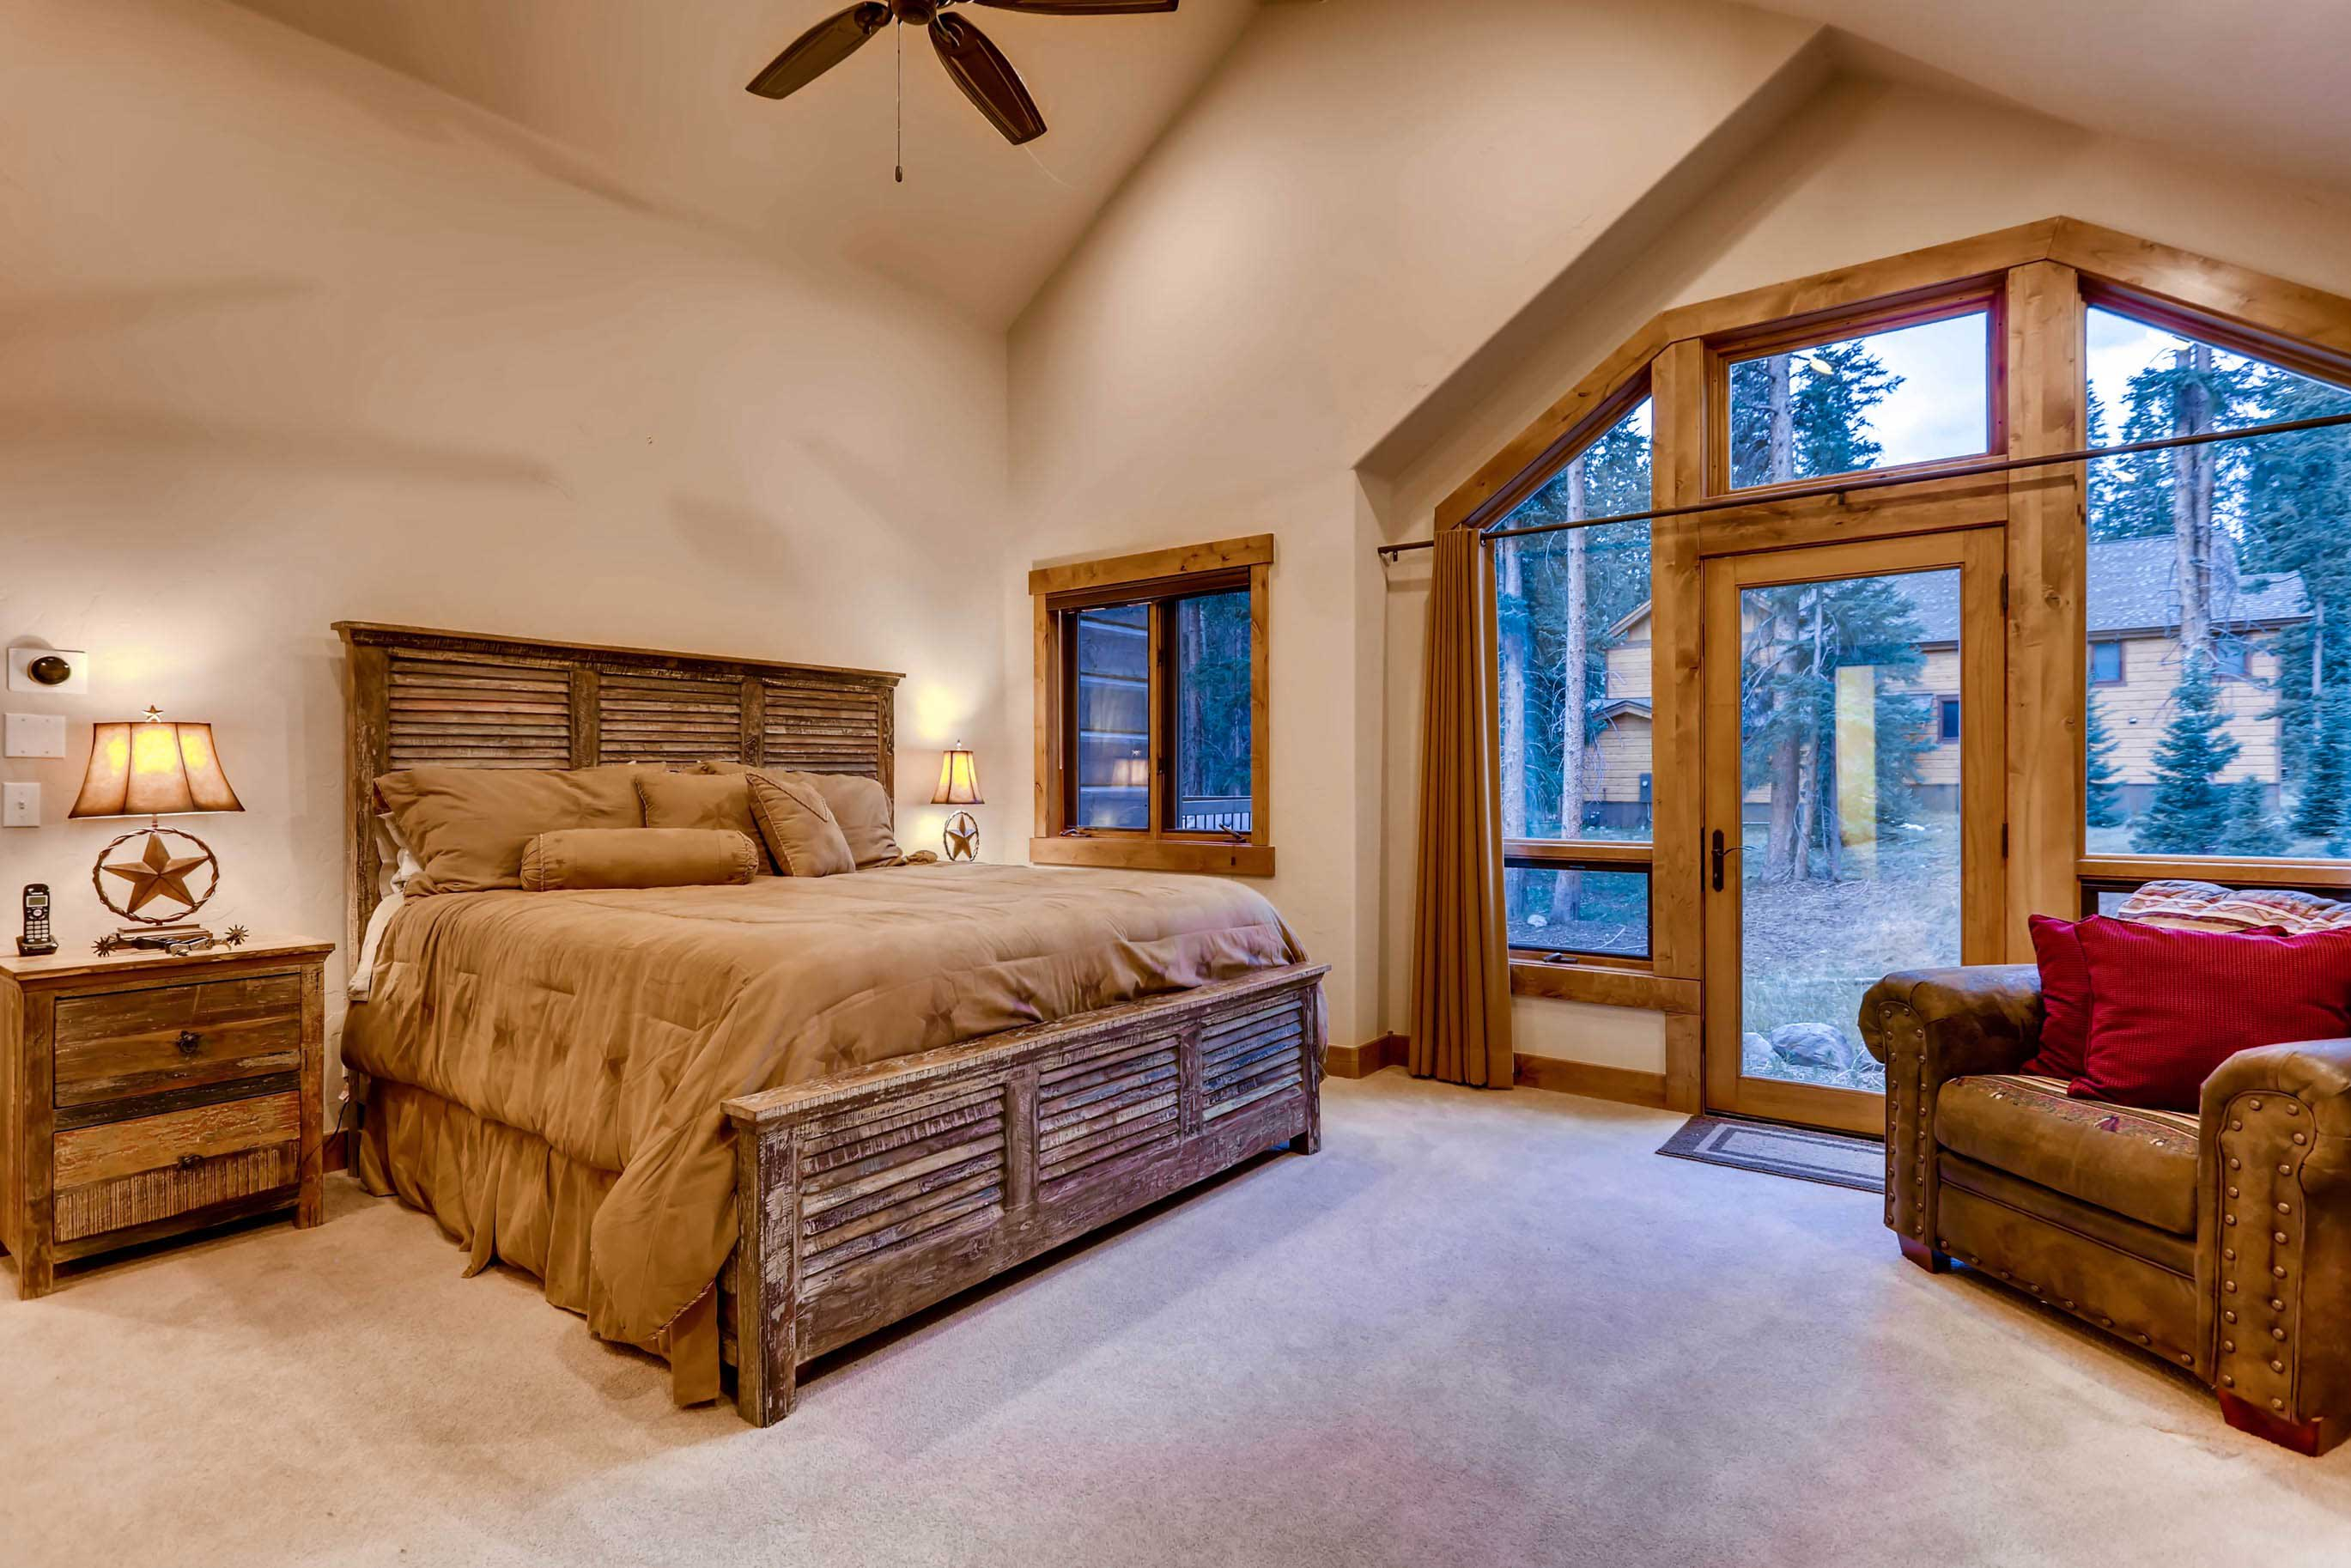 Step outside onto the deck right from the bedroom.